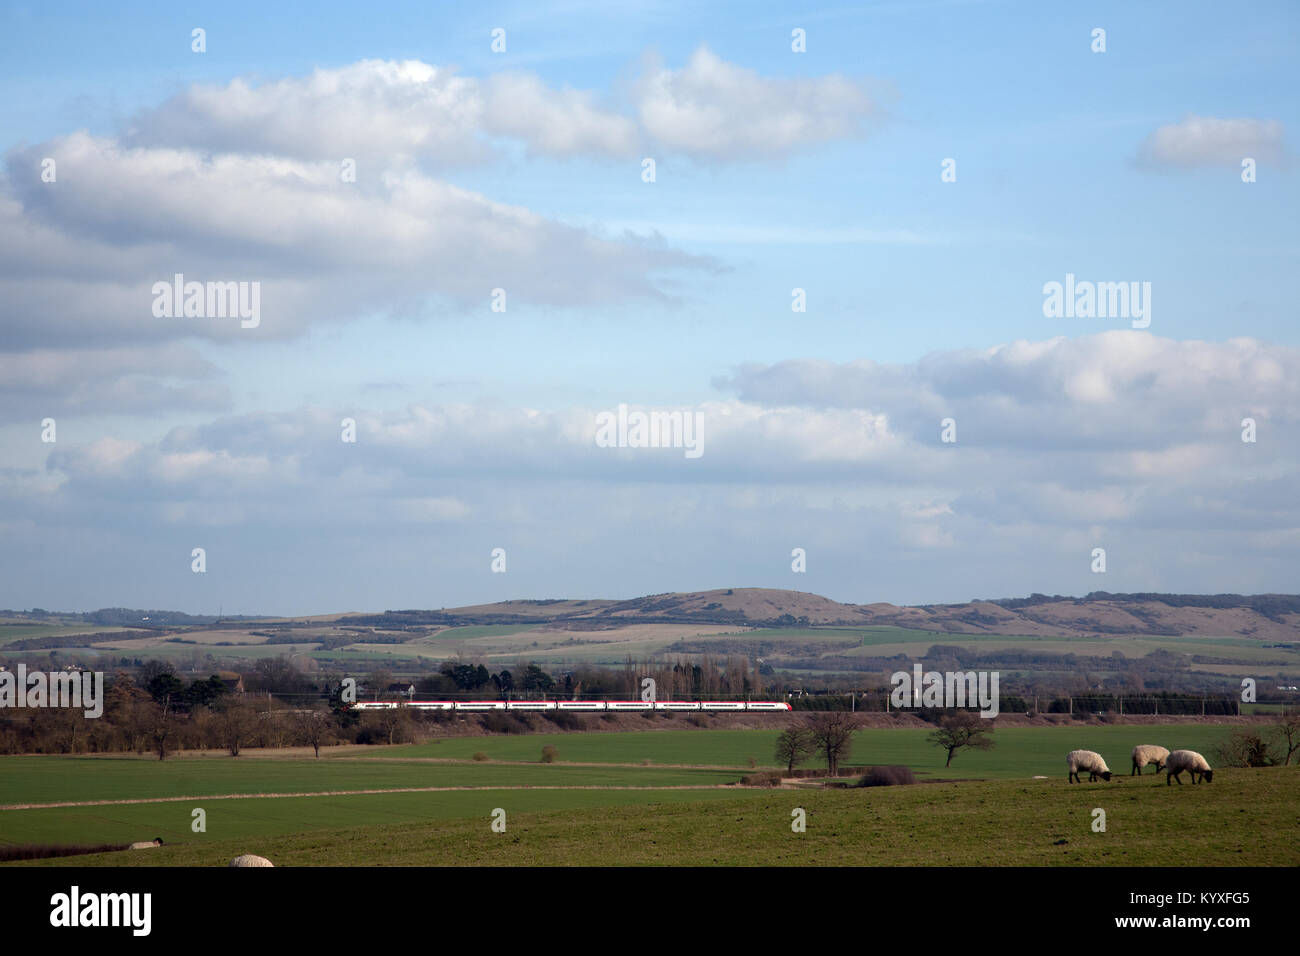 A Virgin Trains Class 390 Pendolino train passes in front of Ivinghoe Beacon with sheep in the foreground. Buckinghamshire, Stock Photo